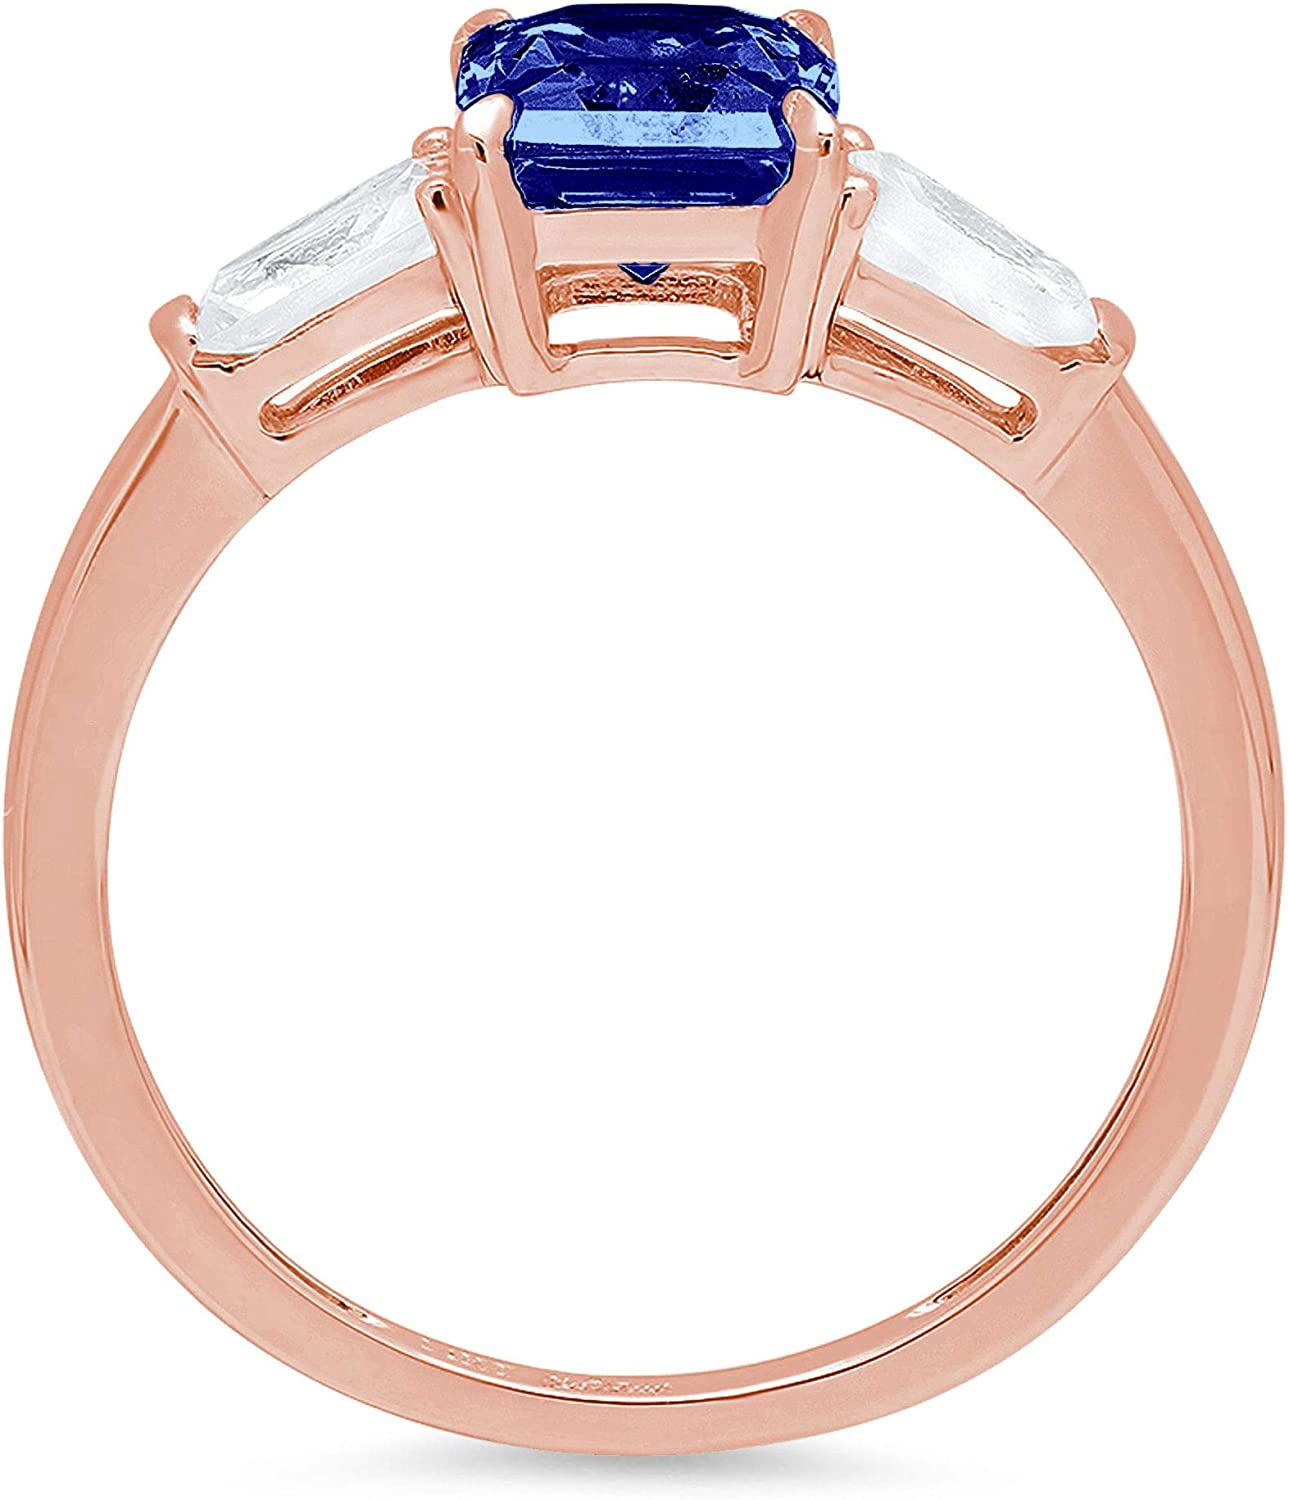 2.05 ct Emerald Baguette cut 3 stone Solitaire with Accent Stunning Genuine Flawless Simulated Blue Tanzanite Modern Promise Statement Designer Ring 14k Rose Gold